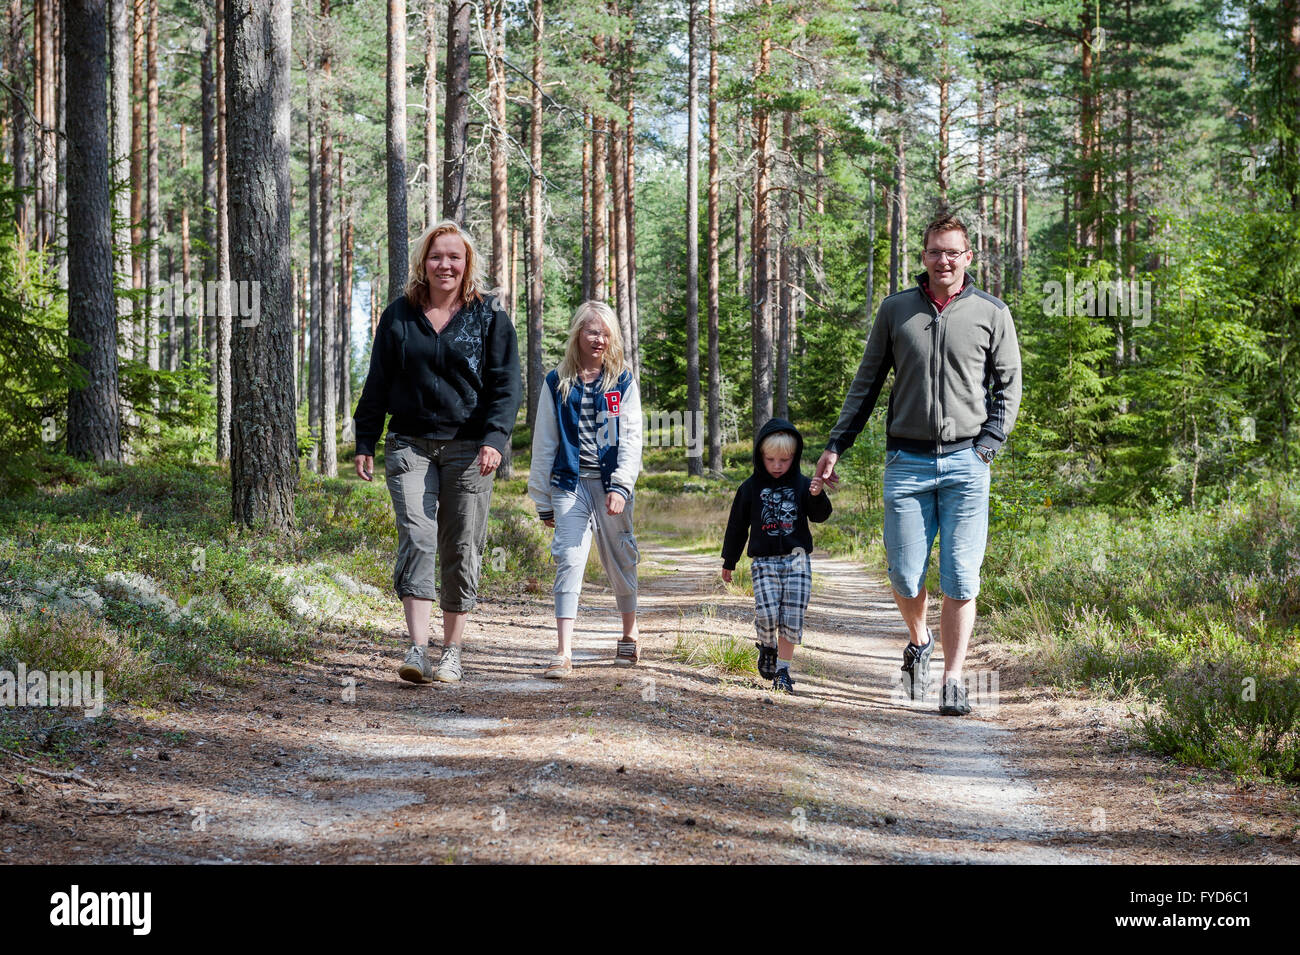 Family on forest walk, Sweden Stock Photo